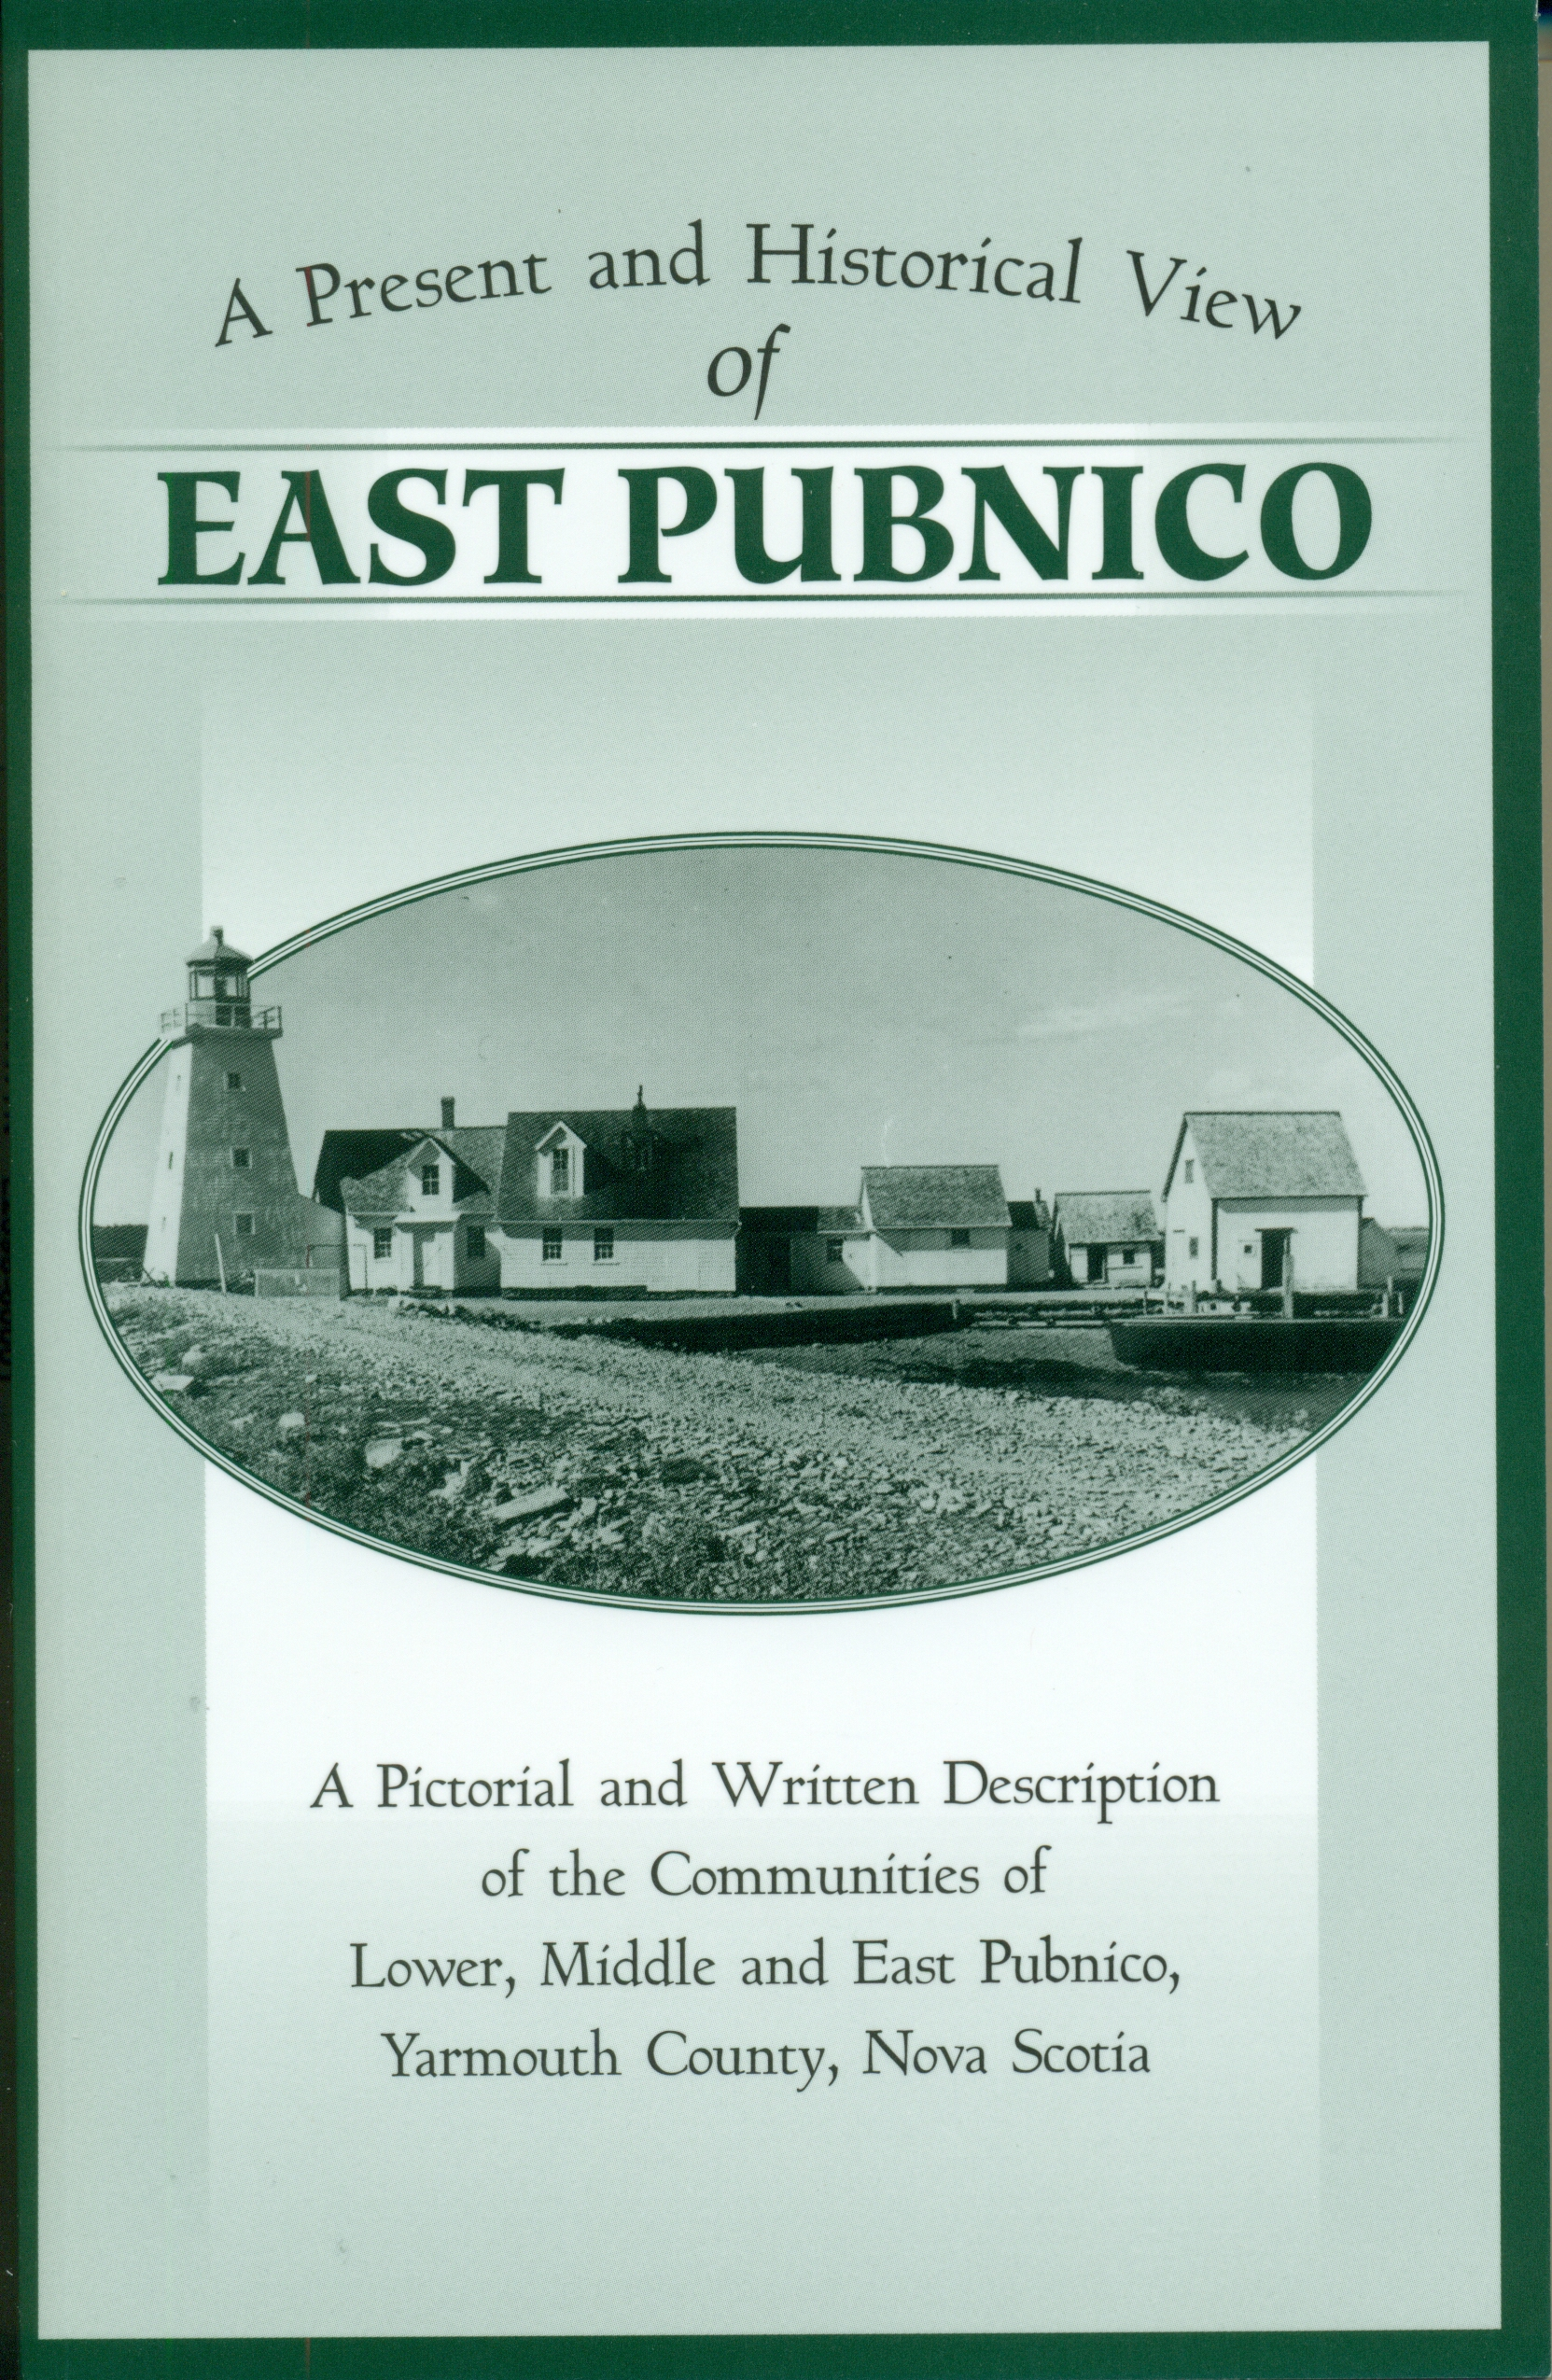 A Present and Historical View of East Pubnico